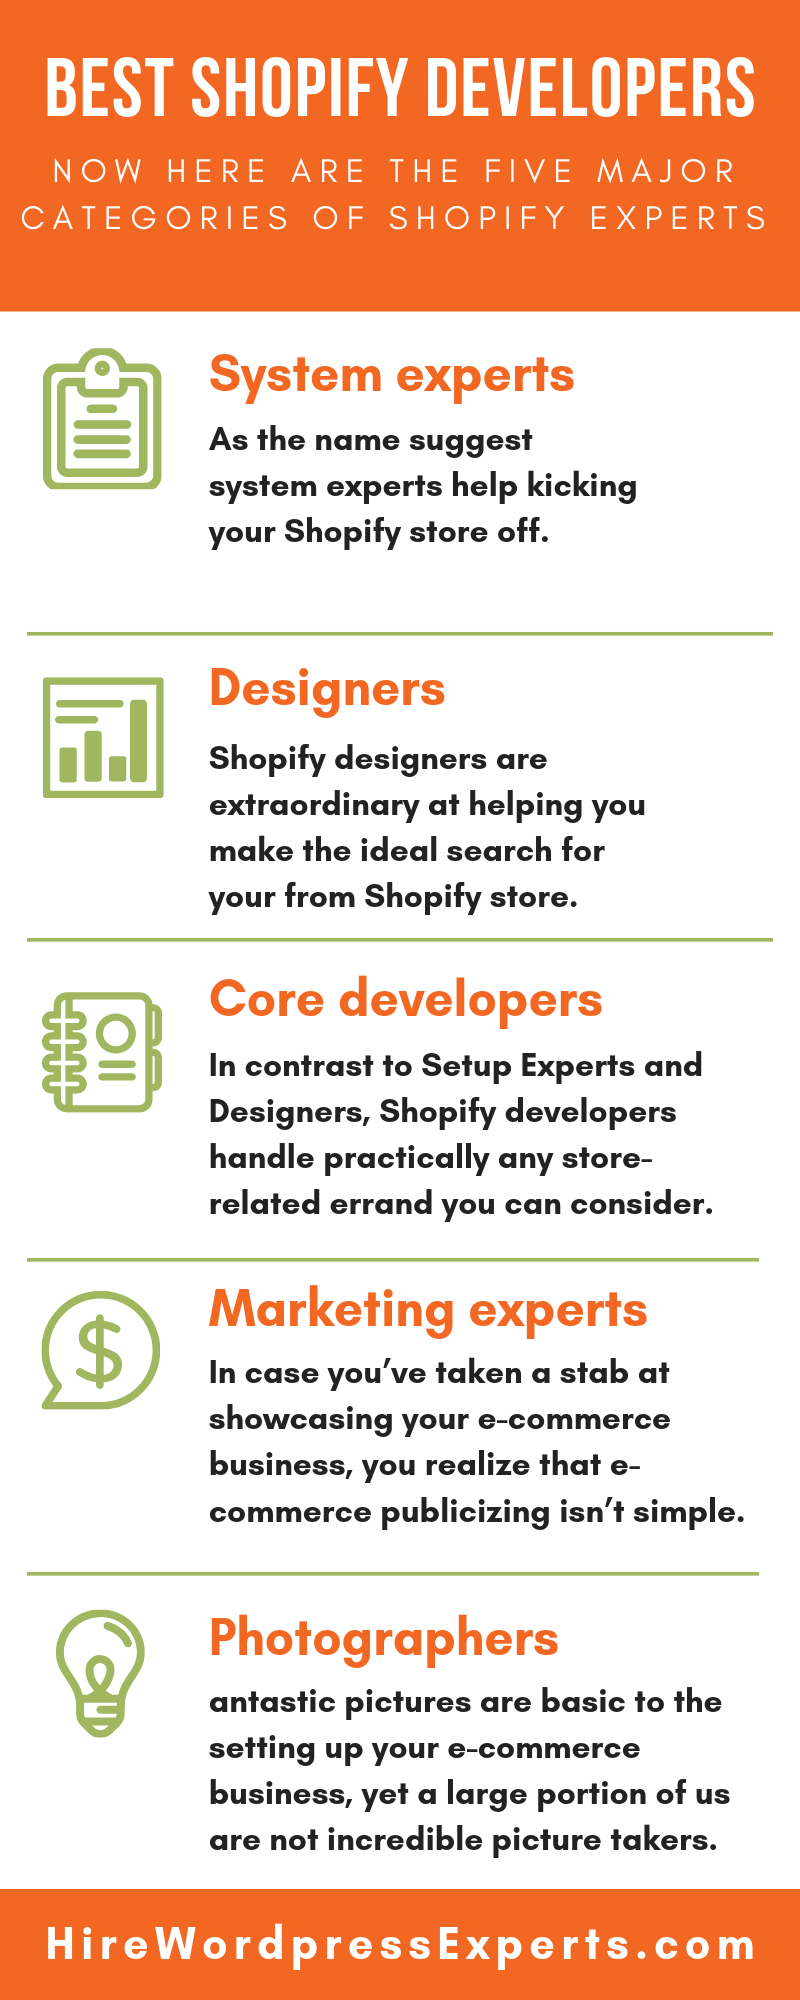 Cheap And Best Shopify Developers For Hire In Mumbai Development Expert System Shopify